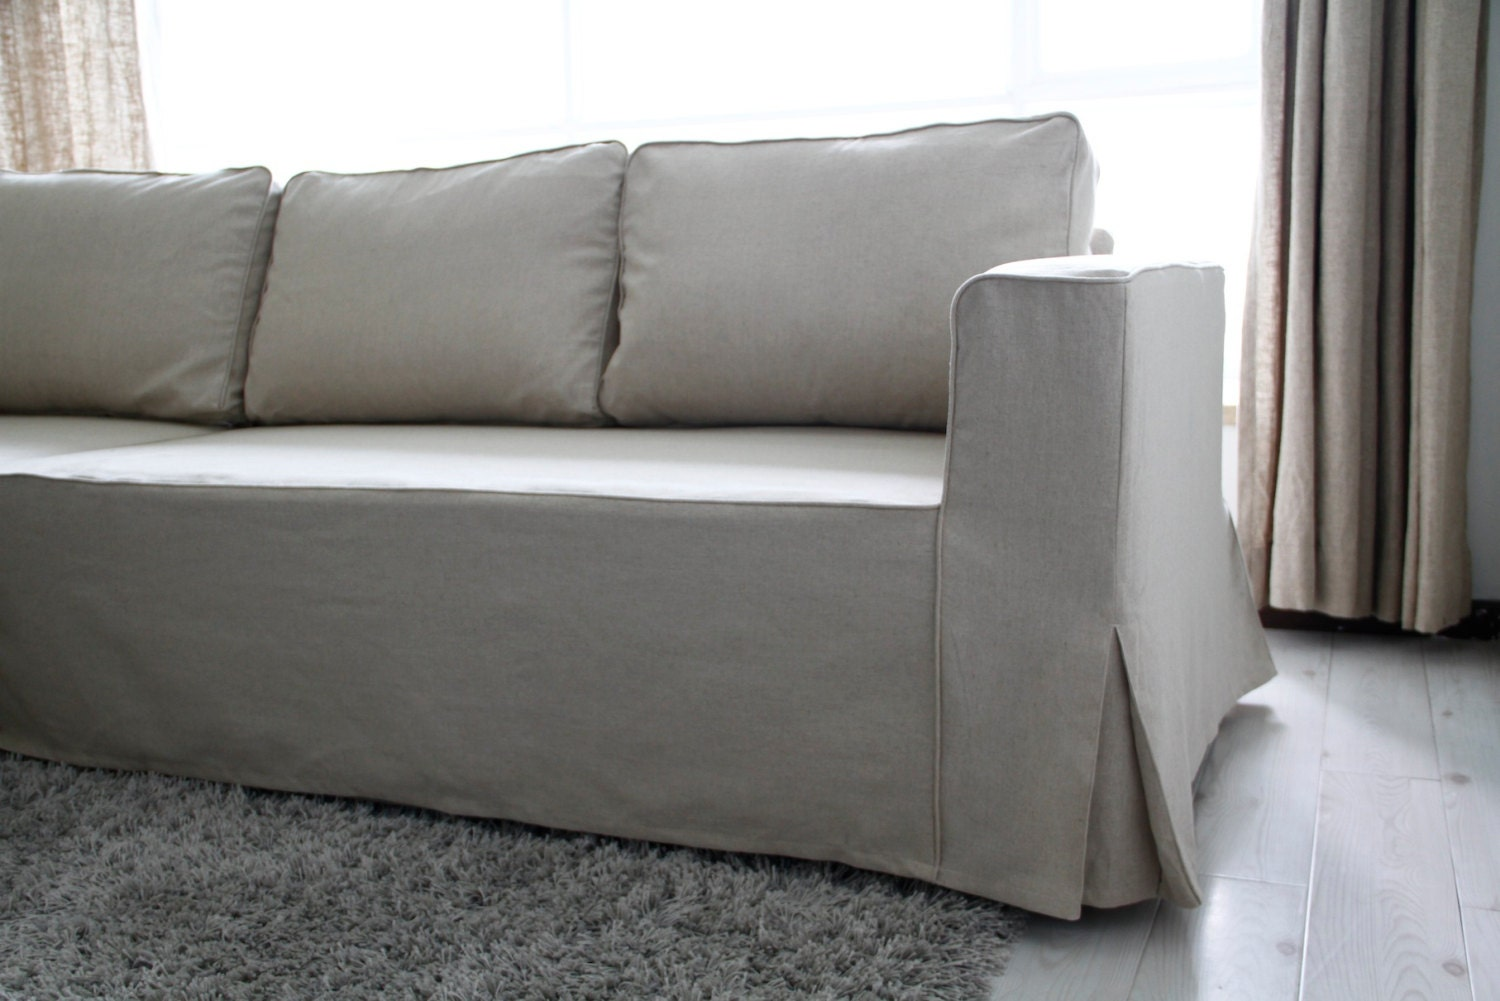 Custom ikea manstad sofa bed cover loose fit style by for Ikea sofa slipcovers discontinued